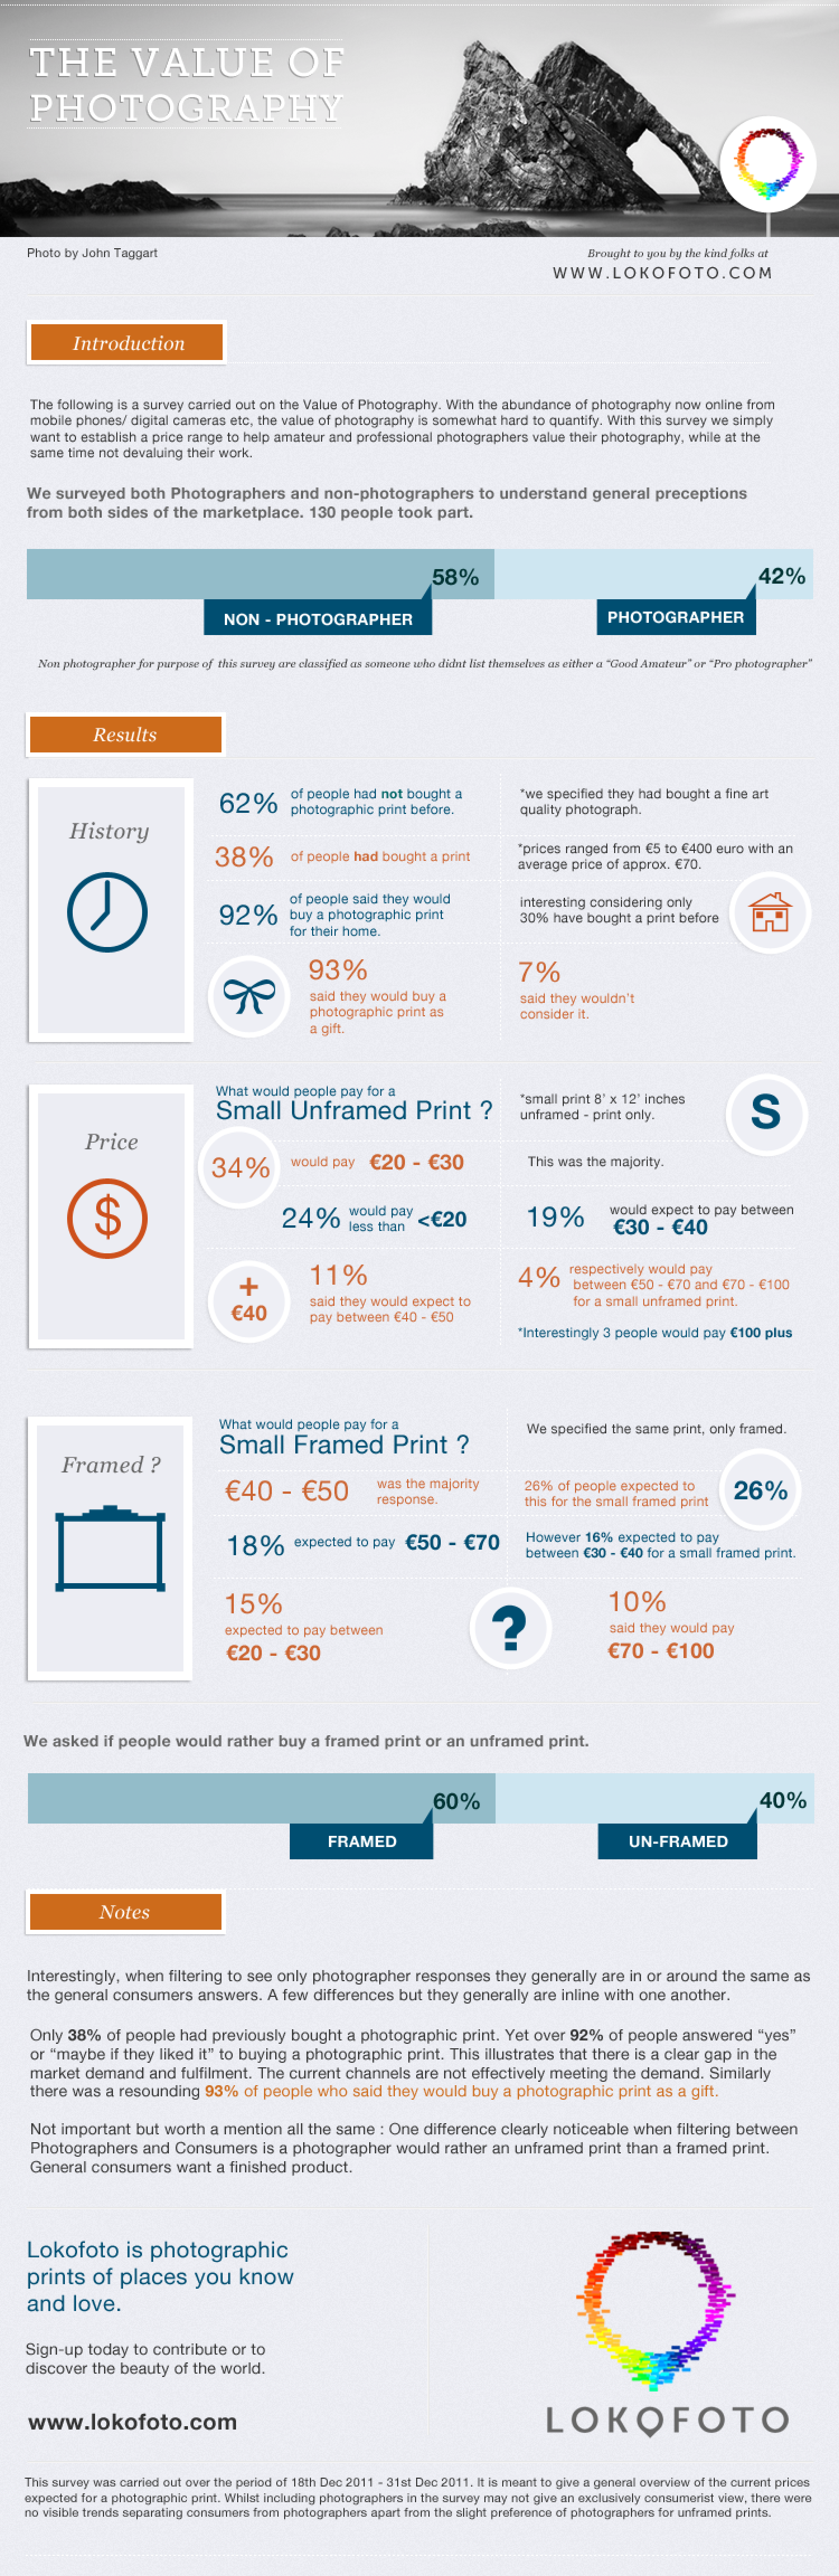 The Value of Photography Infographic